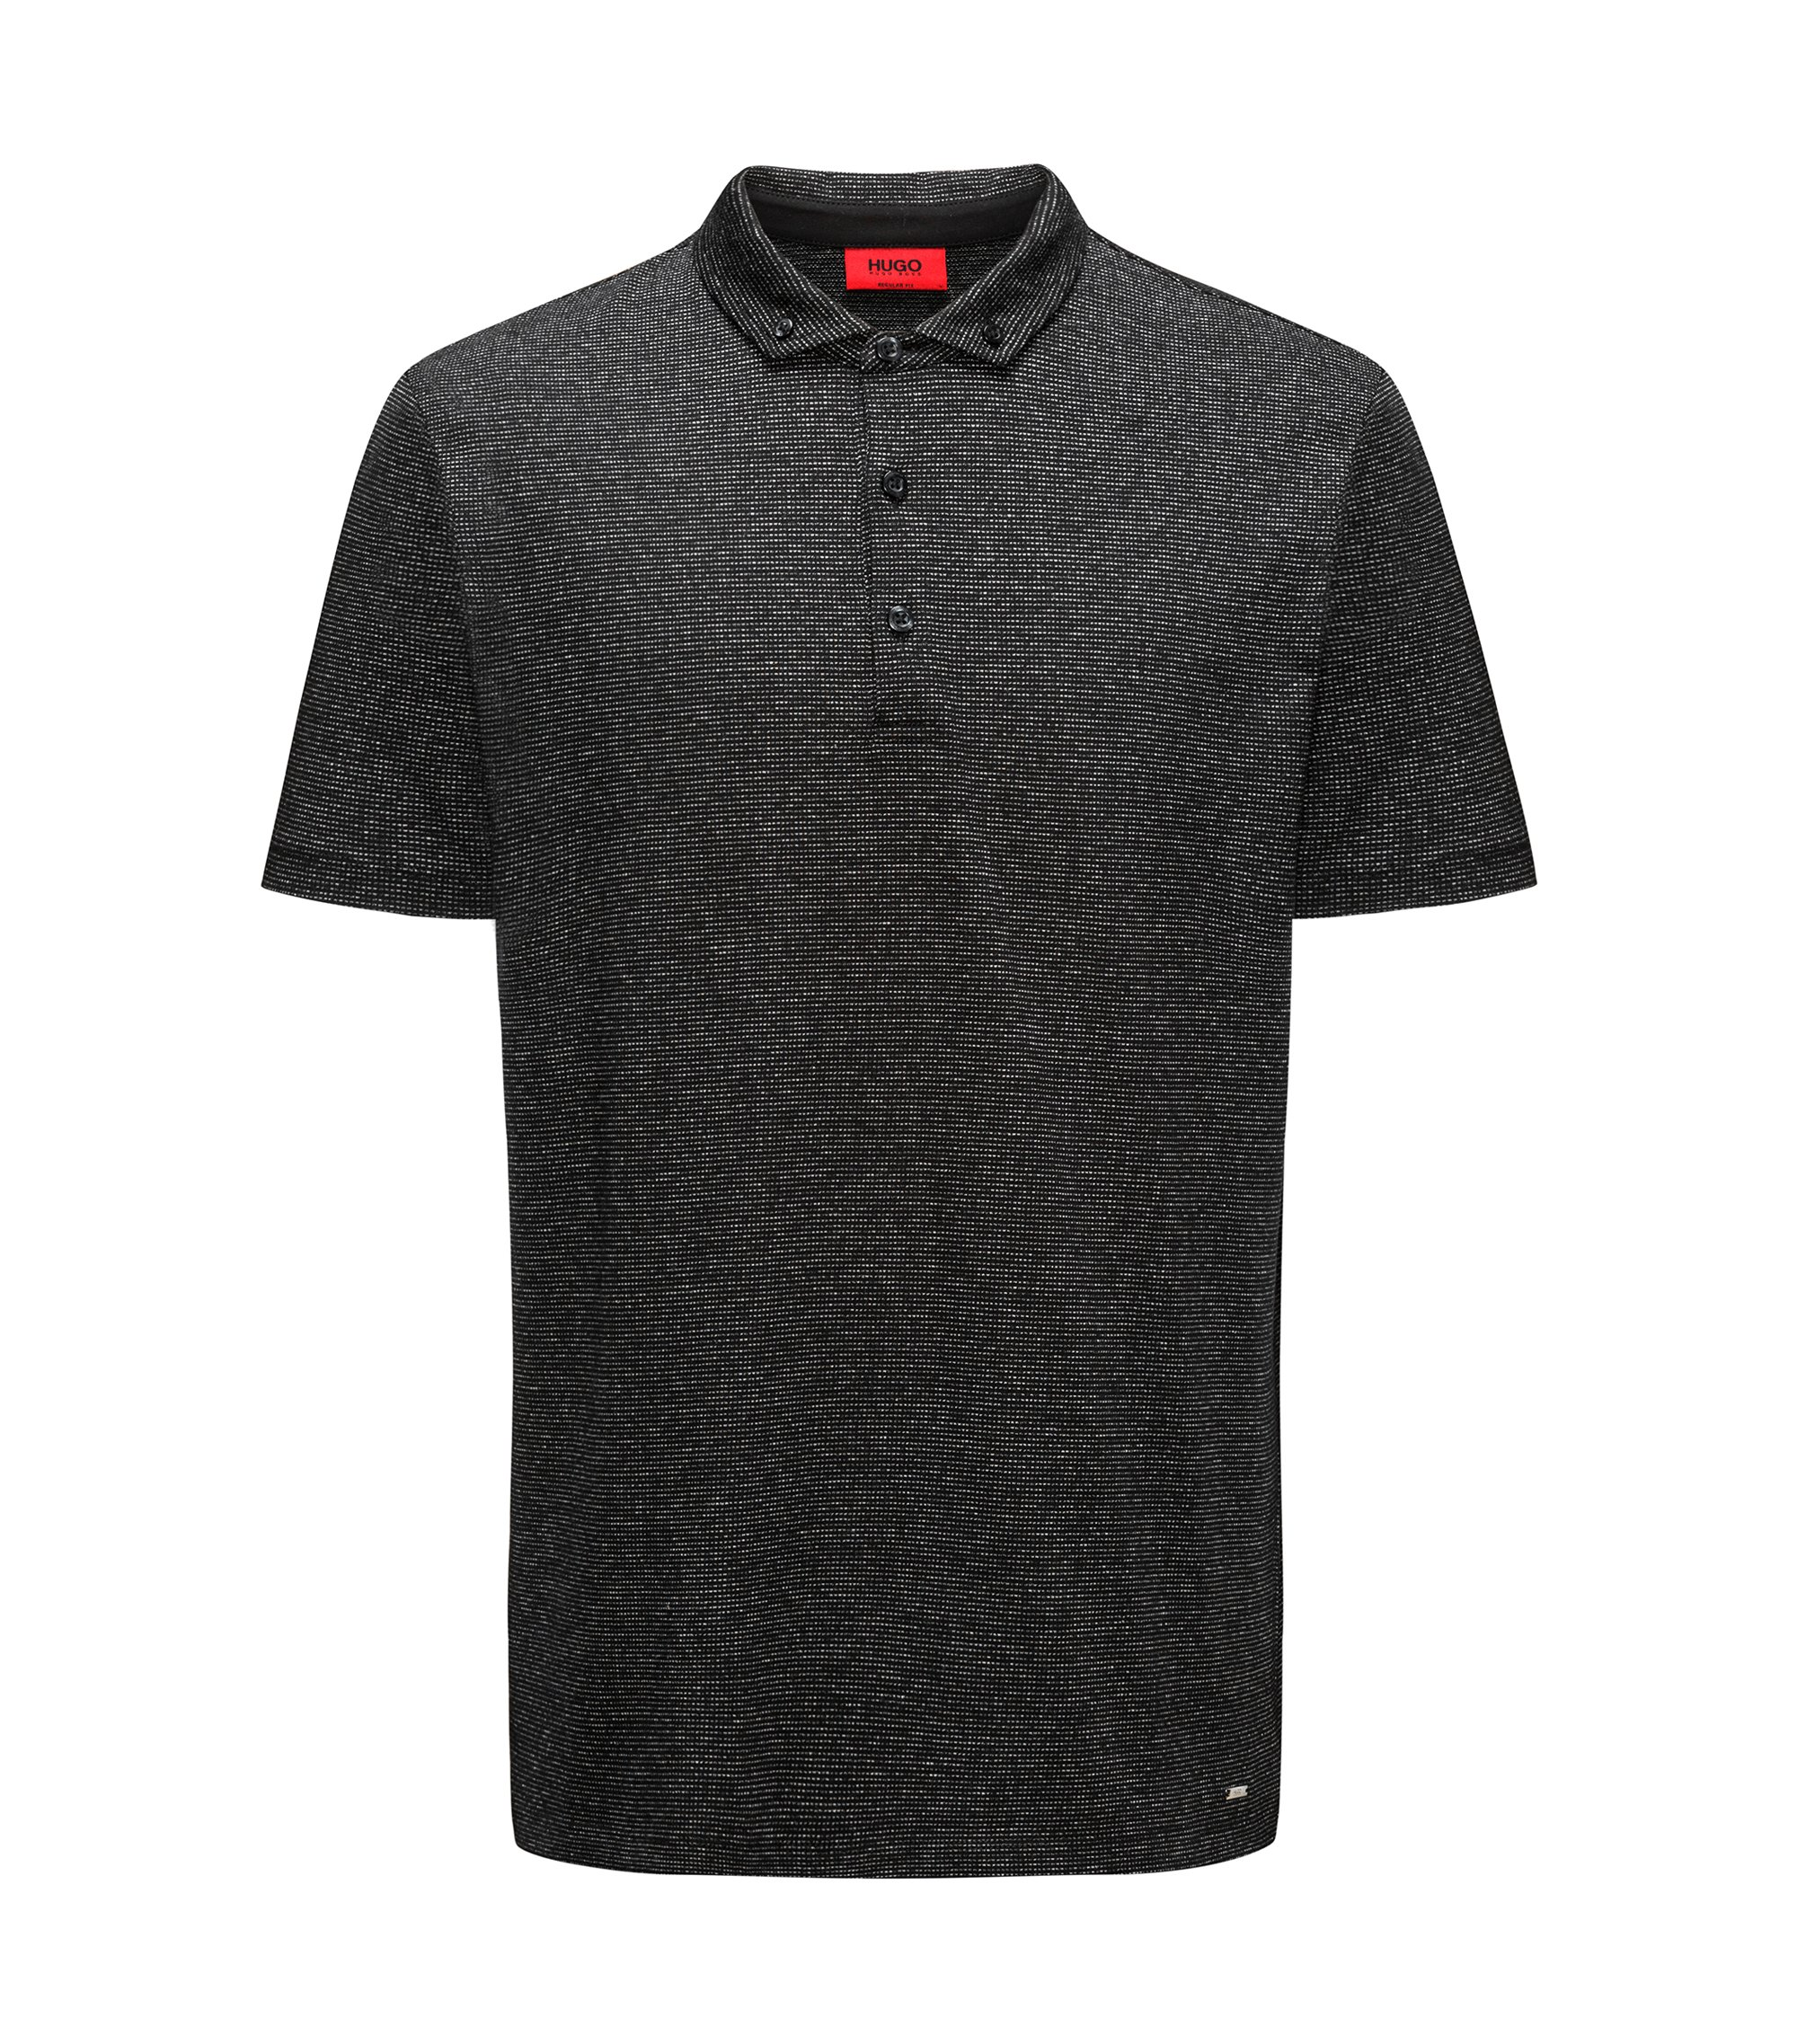 Polo shirt in mercerised cotton-blend jacquard, Black